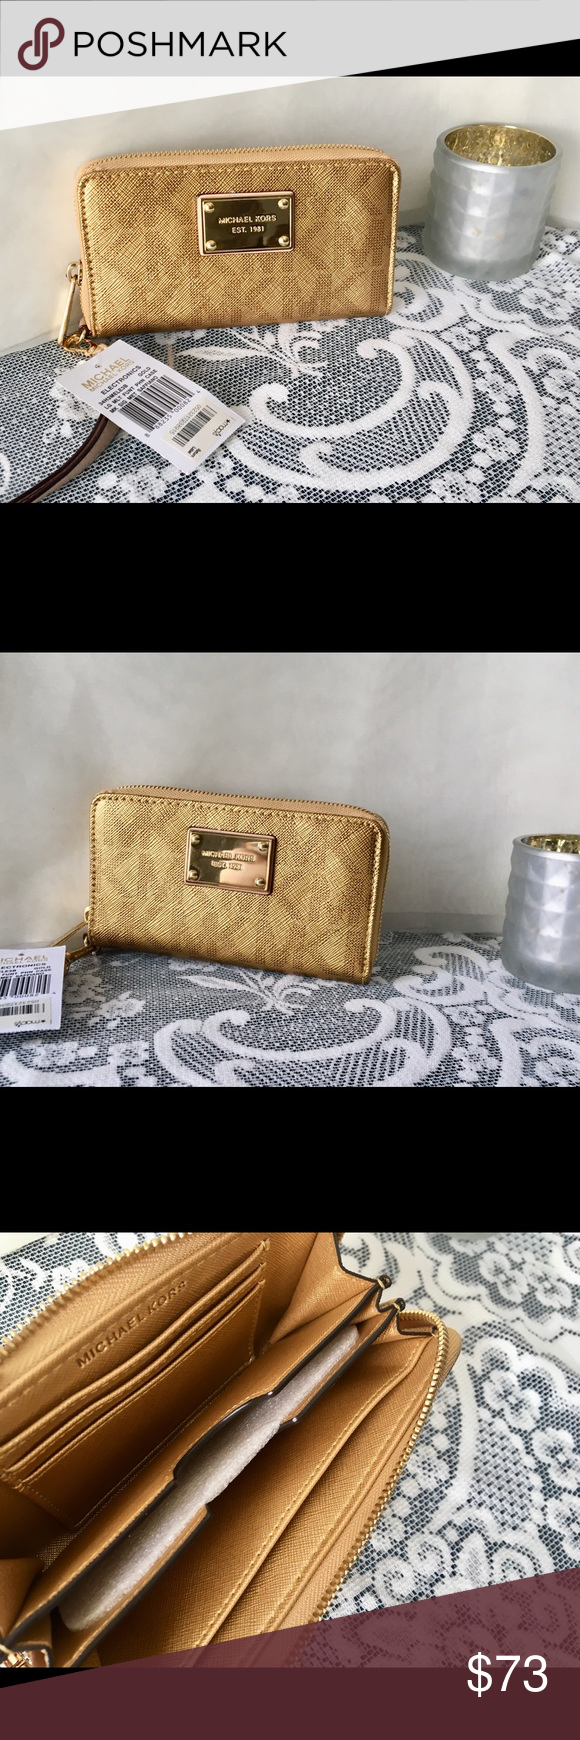 0e82fded30be37 NWT✨Michael Kors✨MK GOLD Signature Metallic Wallet Brand new with tags  gorgeous Michael